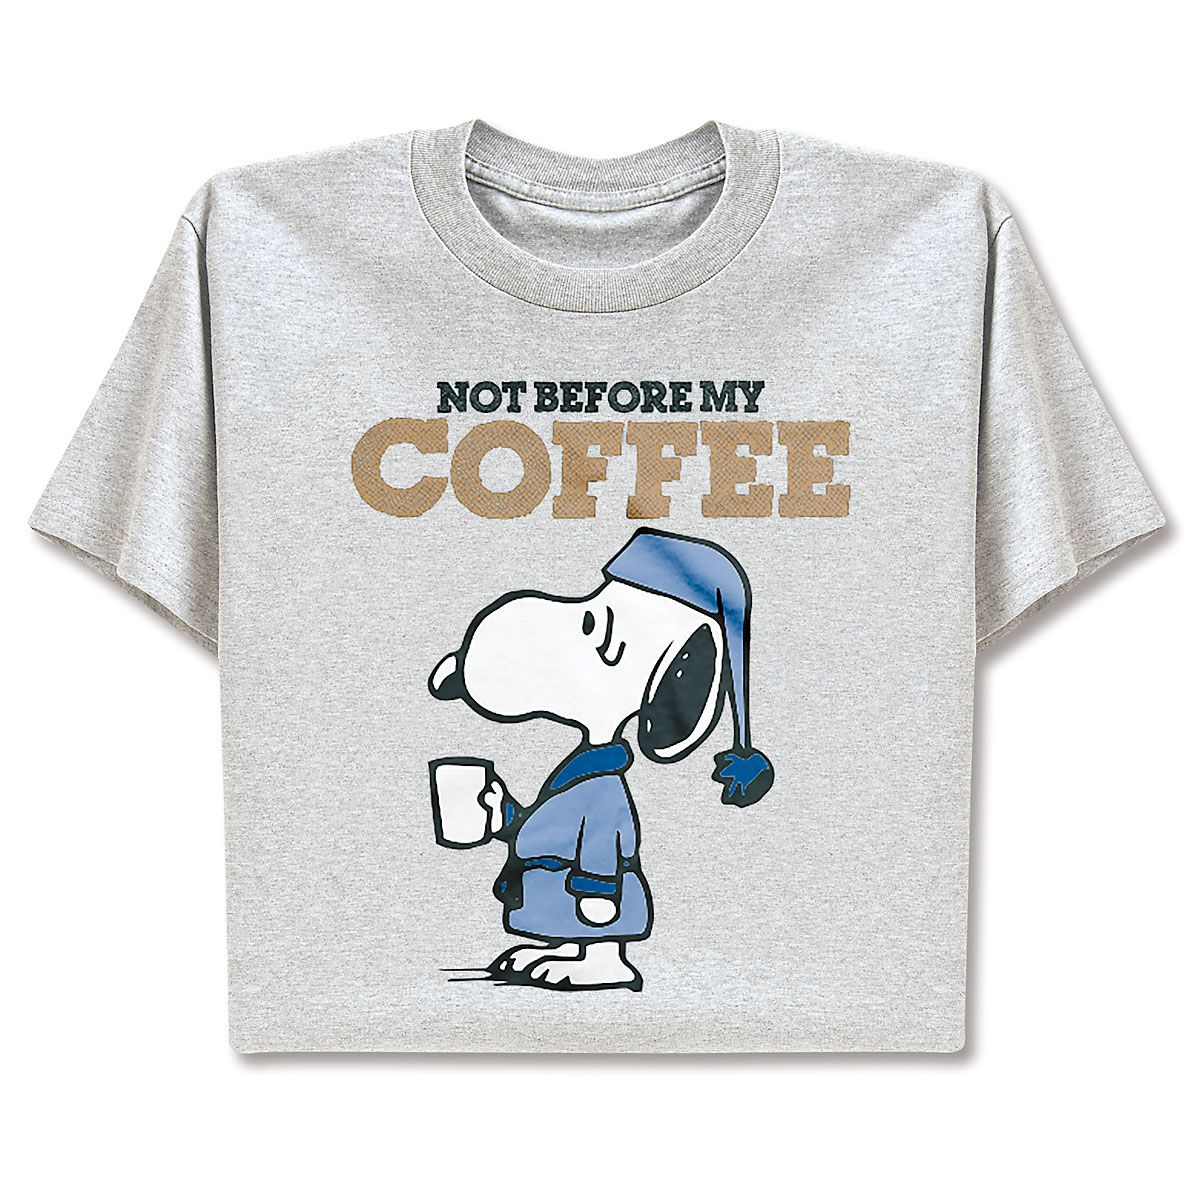 PEANUTS® T-Shirt - Not Before My Coffee - Medium